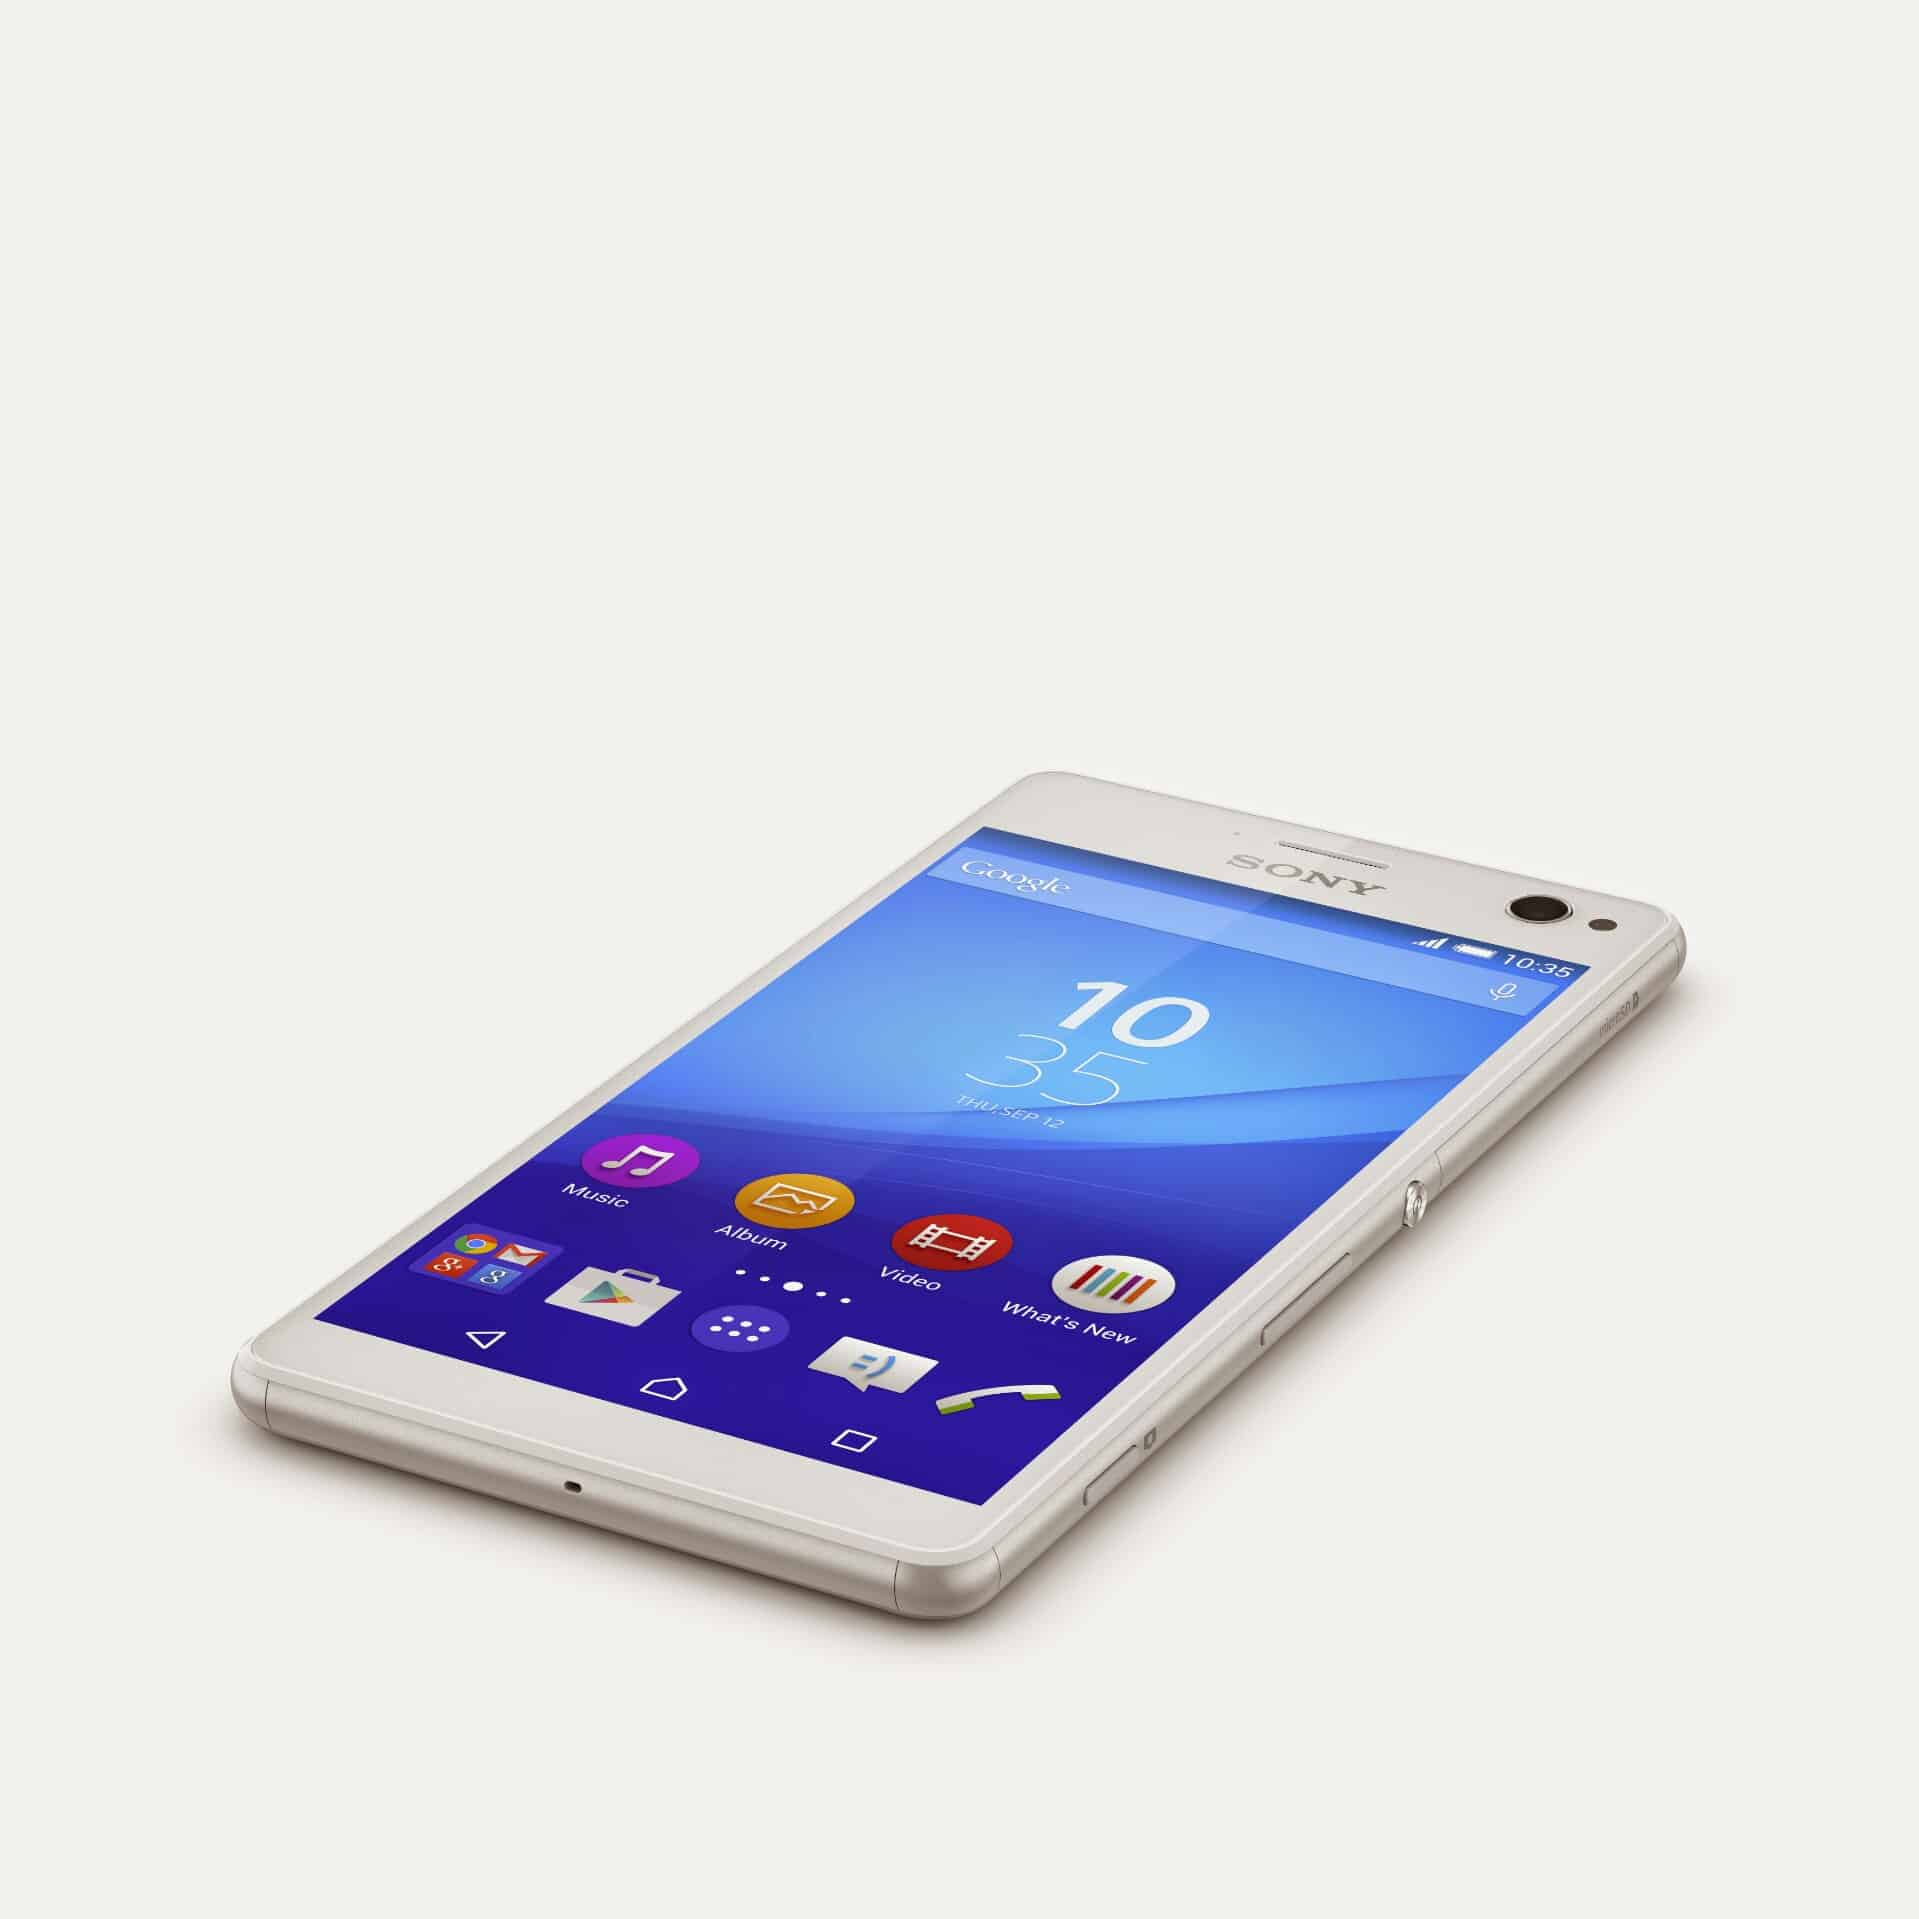 Sony Xperia C4 press images 2